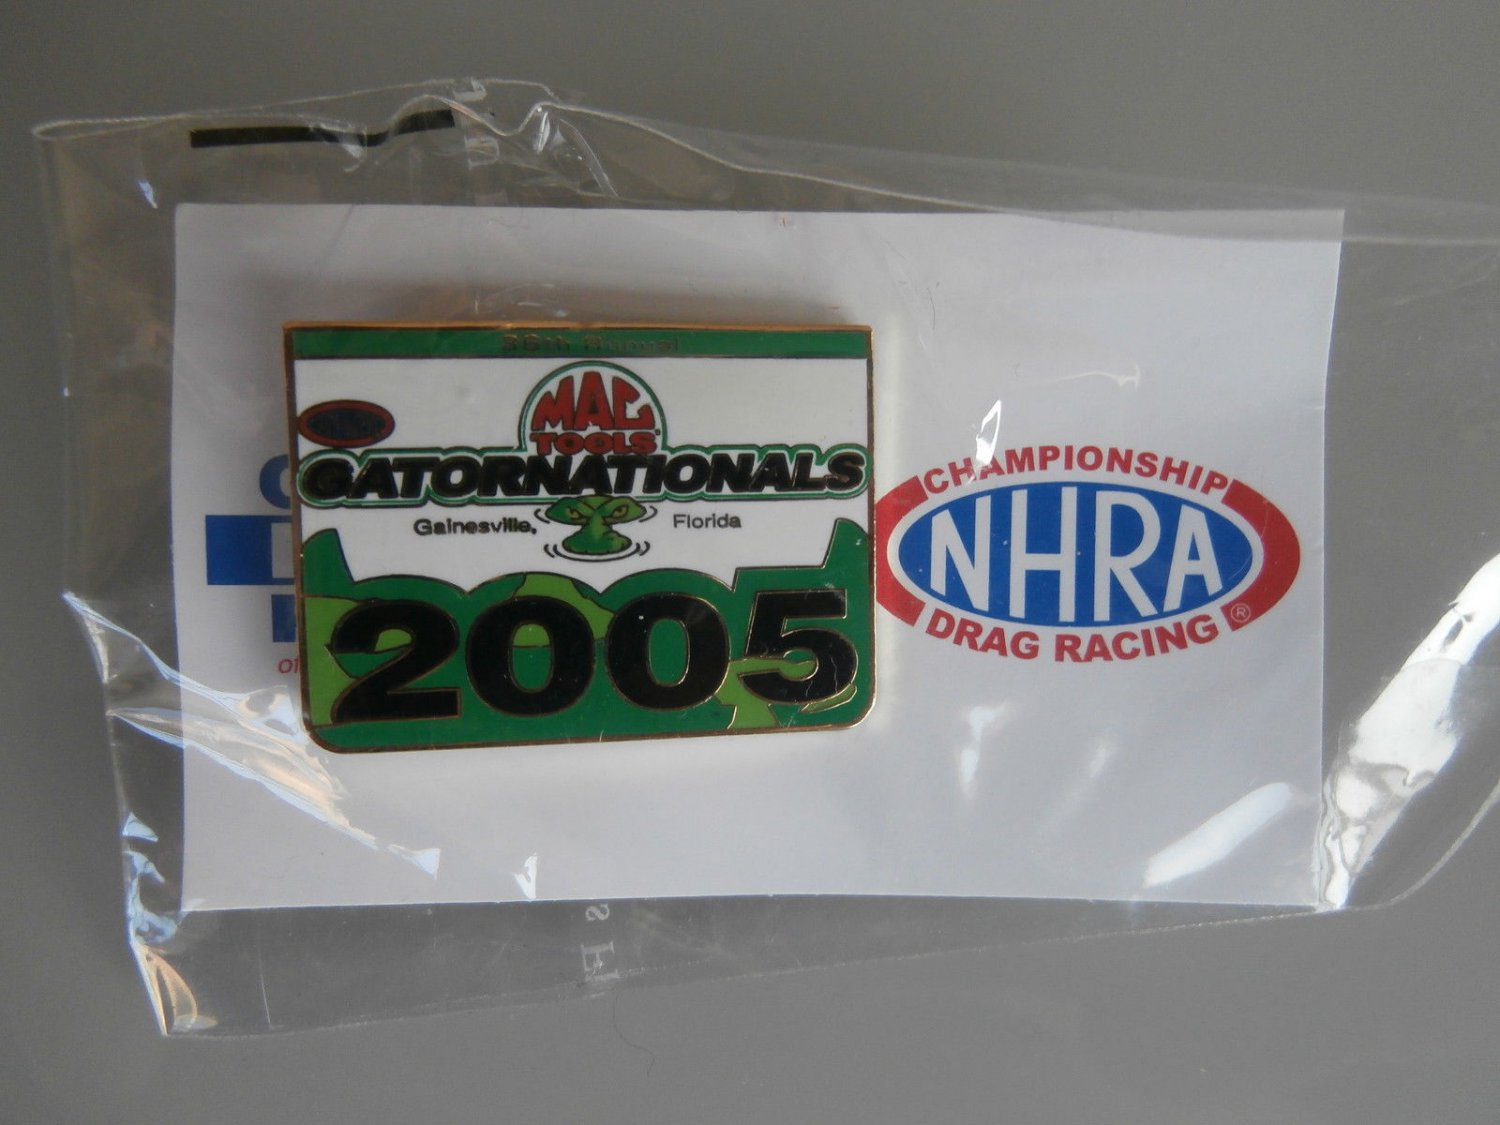 2005 NHRA Event Pin Gainesville